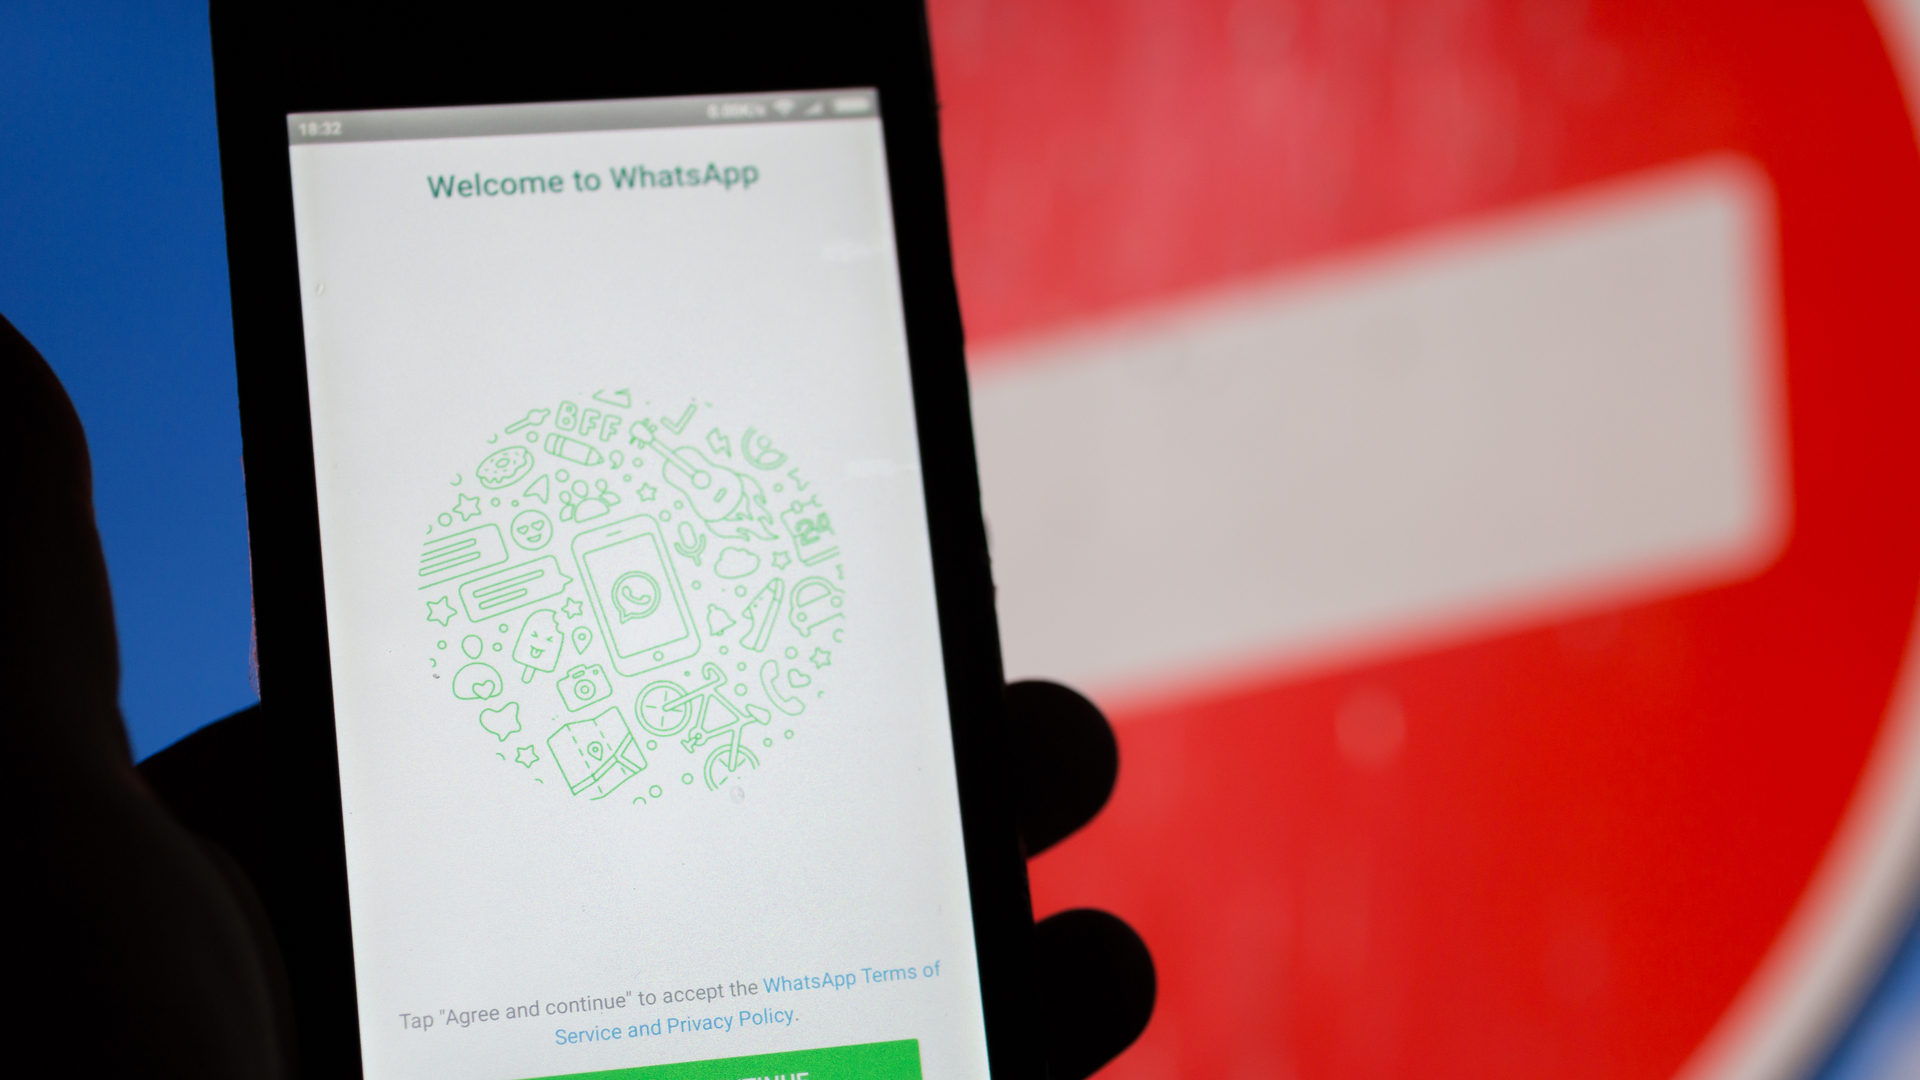 WhatsApp blocked by Brazil central bank